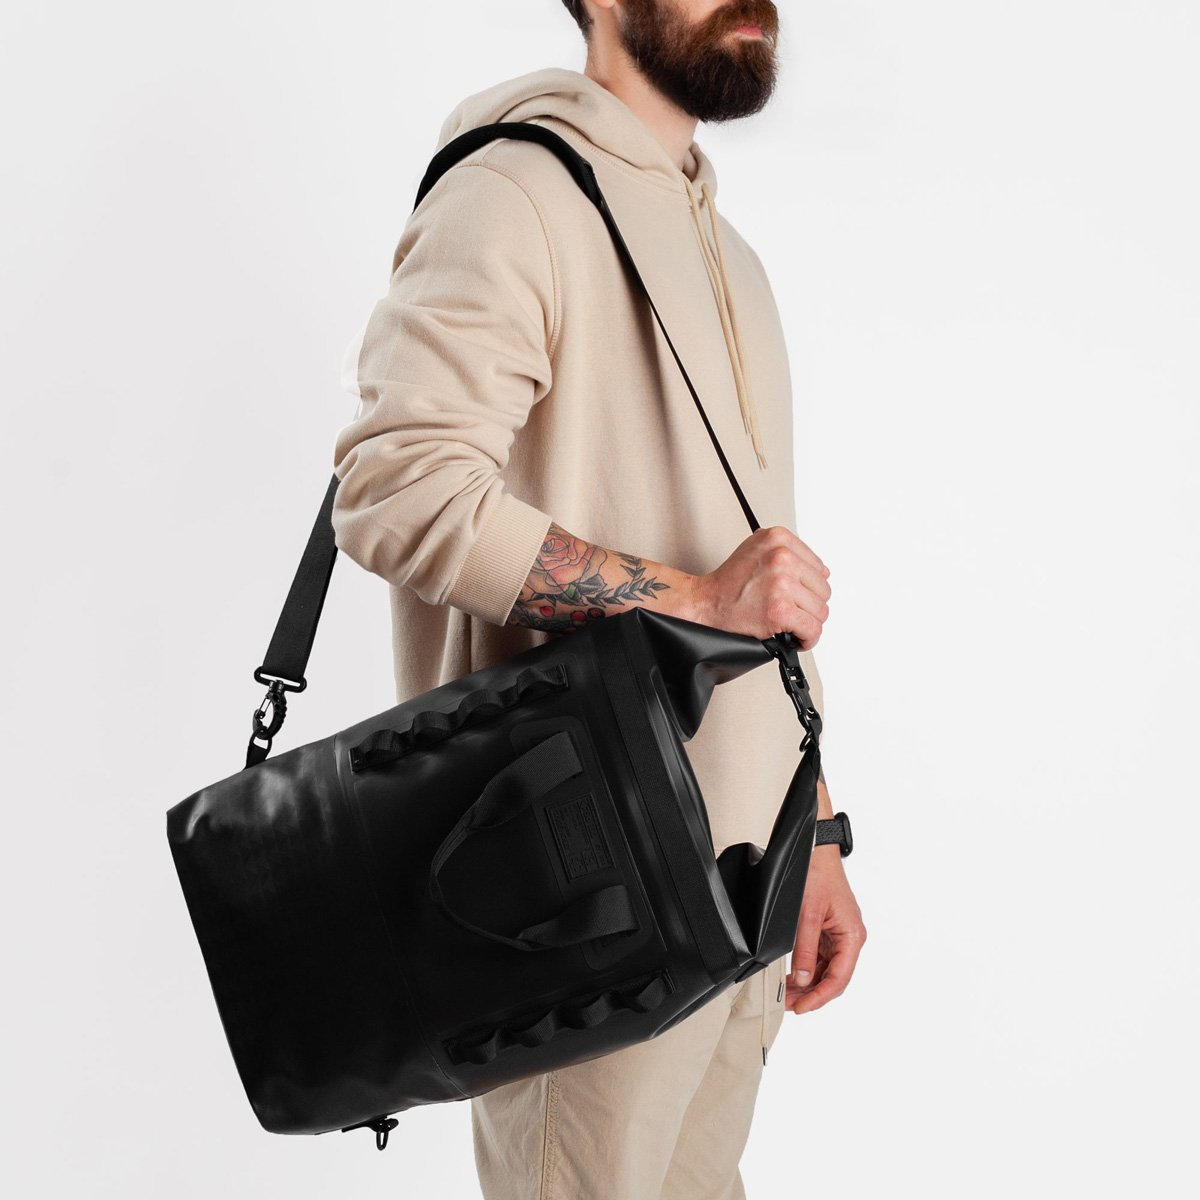 Model carrying So iLL 25L On the Roam Dirt Bag over the shoulder